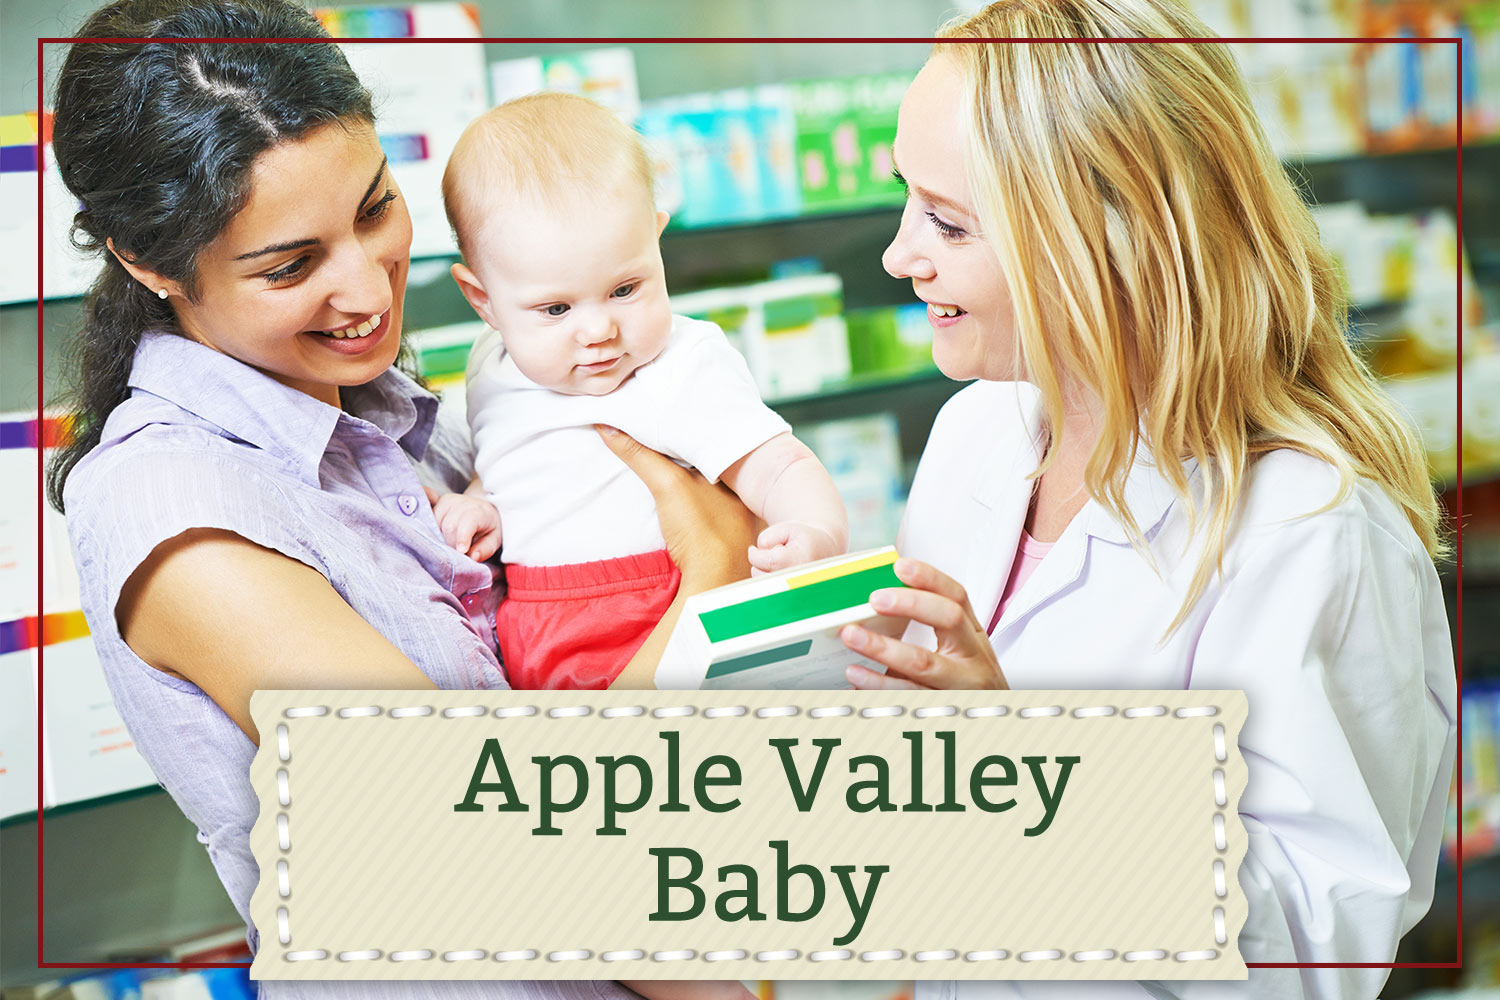 apple-valley-baby-service.jpg